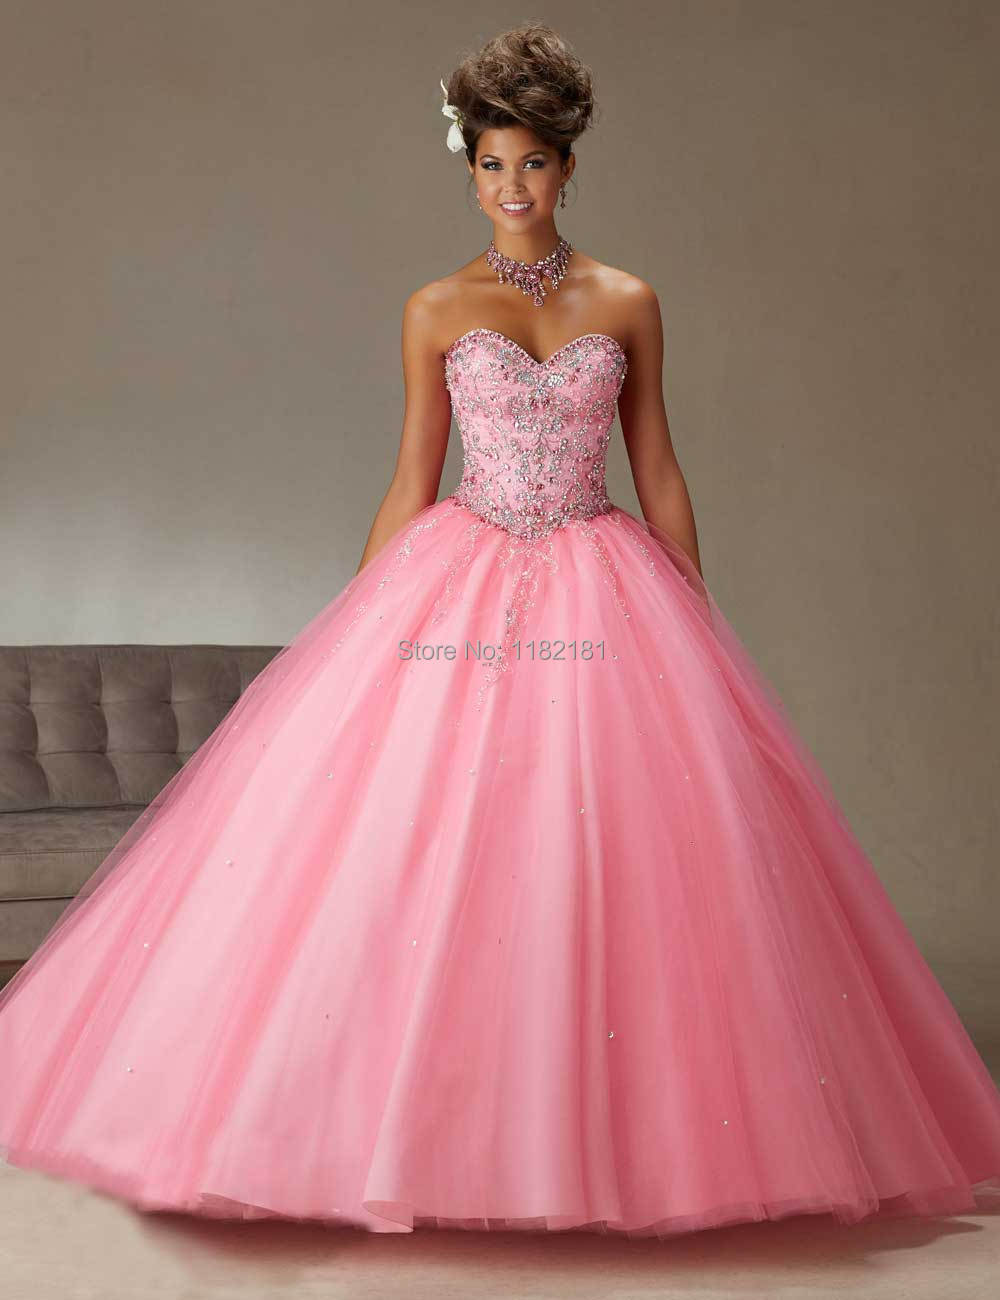 Aliexpress.com : Buy 2016 High Quality Beaded Sweet 16 Dress Pink ...